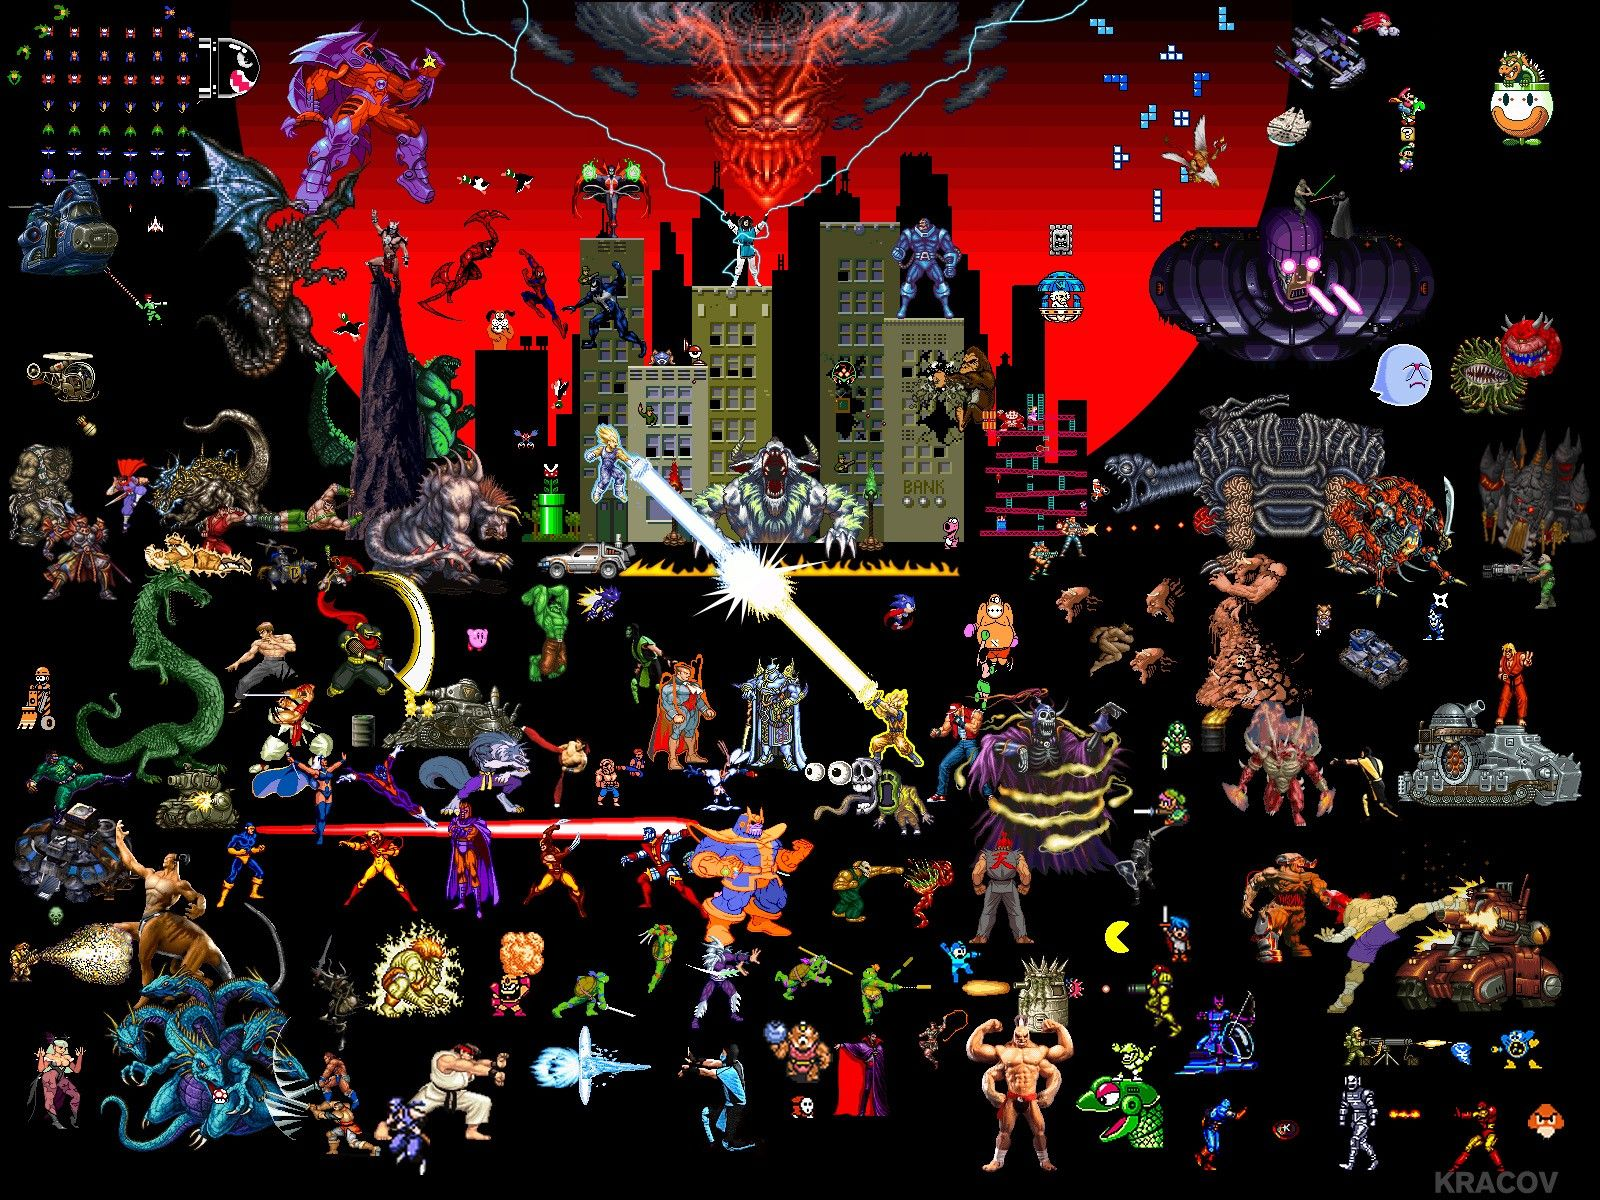 Video Game Wallpapers Classic Full Hd Retro Games Wallpaper Gaming Wallpapers Wallpaper Iphone Love